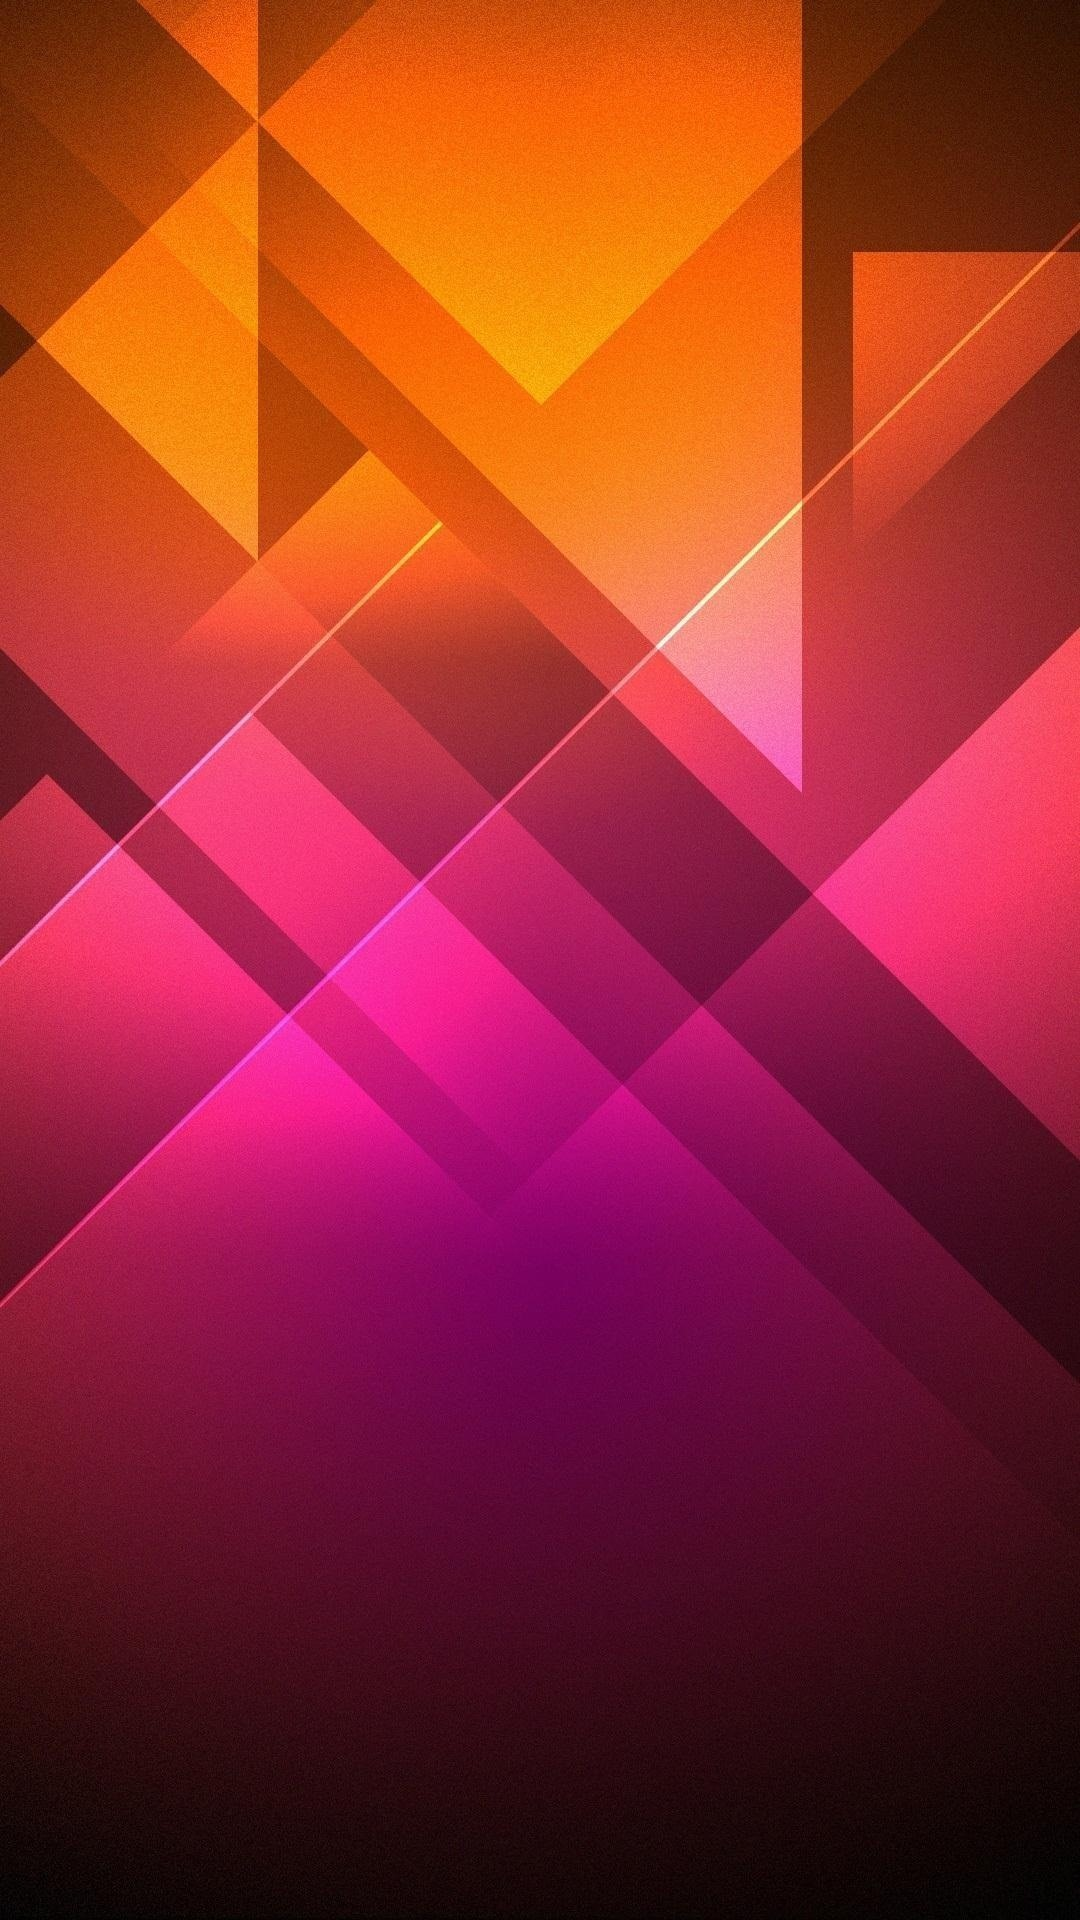 Get the HTC One's New Wallpapers on Any of Your Android Devices Now